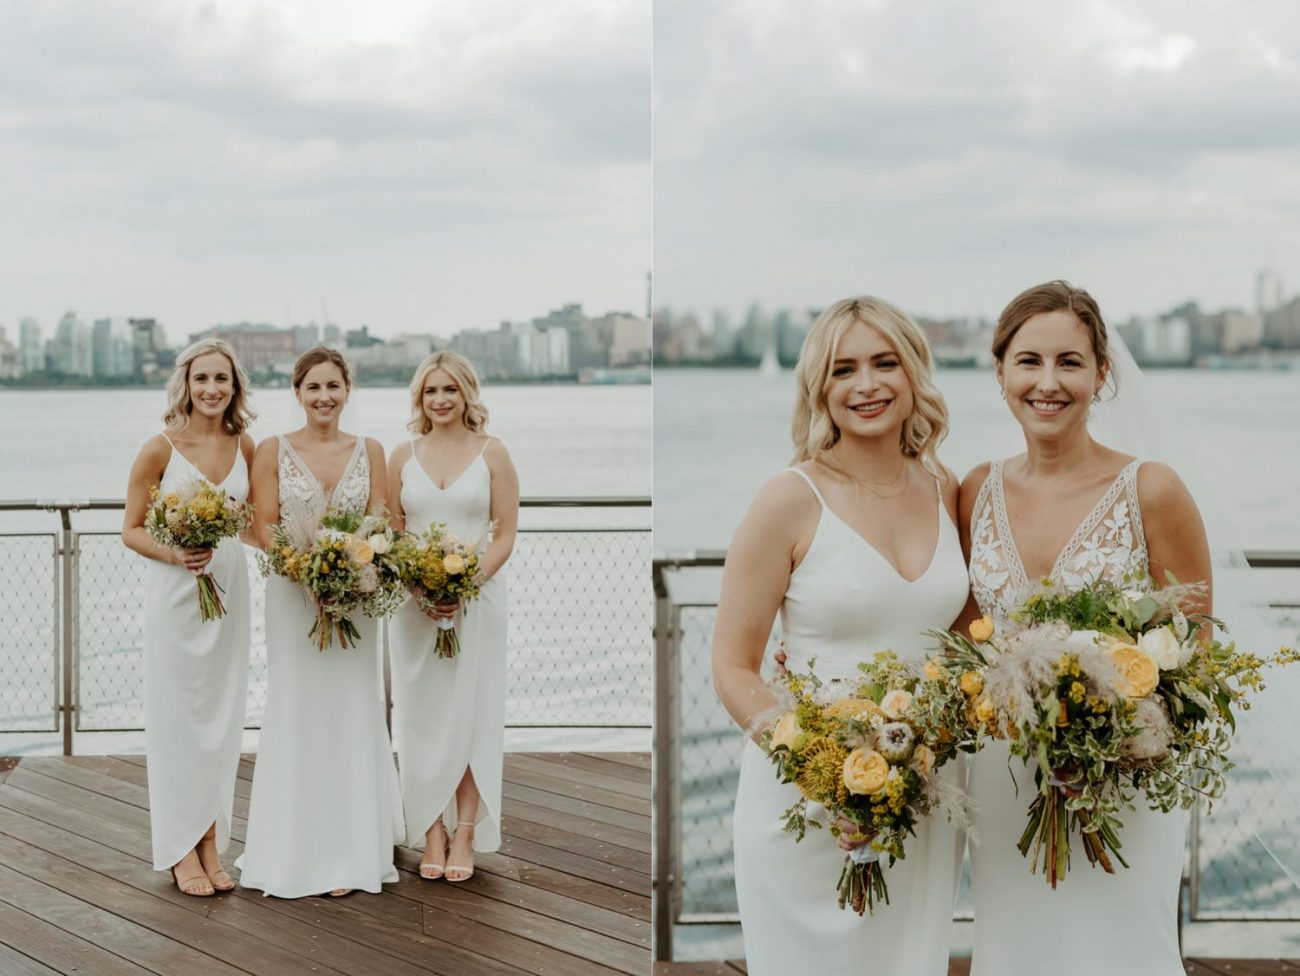 Antique Loft Hoboken Wedding New Jersey Wedding Photographer Anais Possamai Photography 038